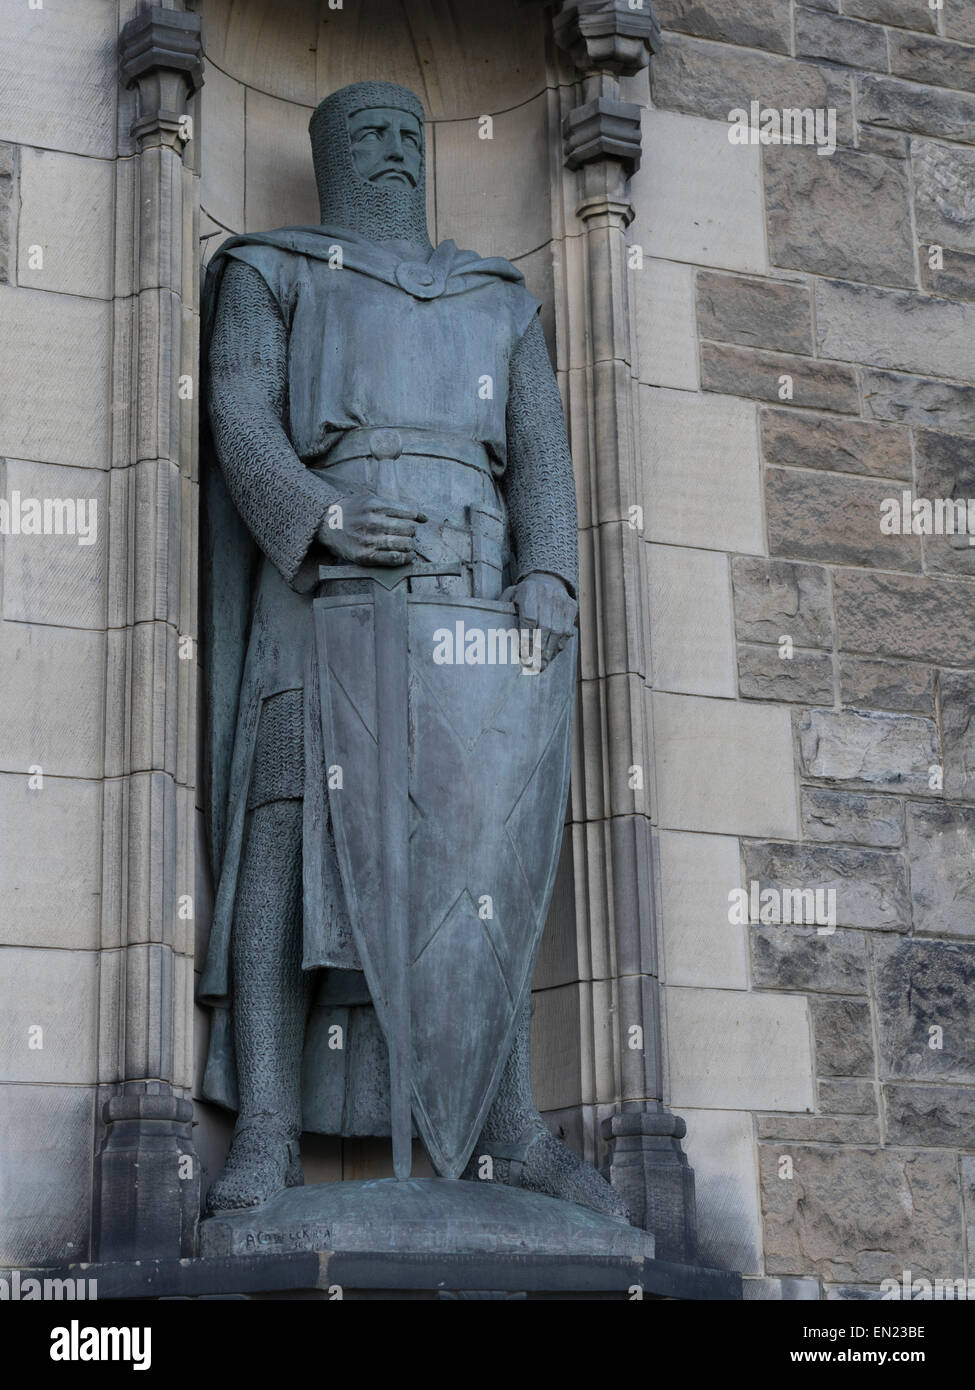 Memorial To Wallace, William Wallace, Edinburgh Castle, Scotland, UK. - Stock Image